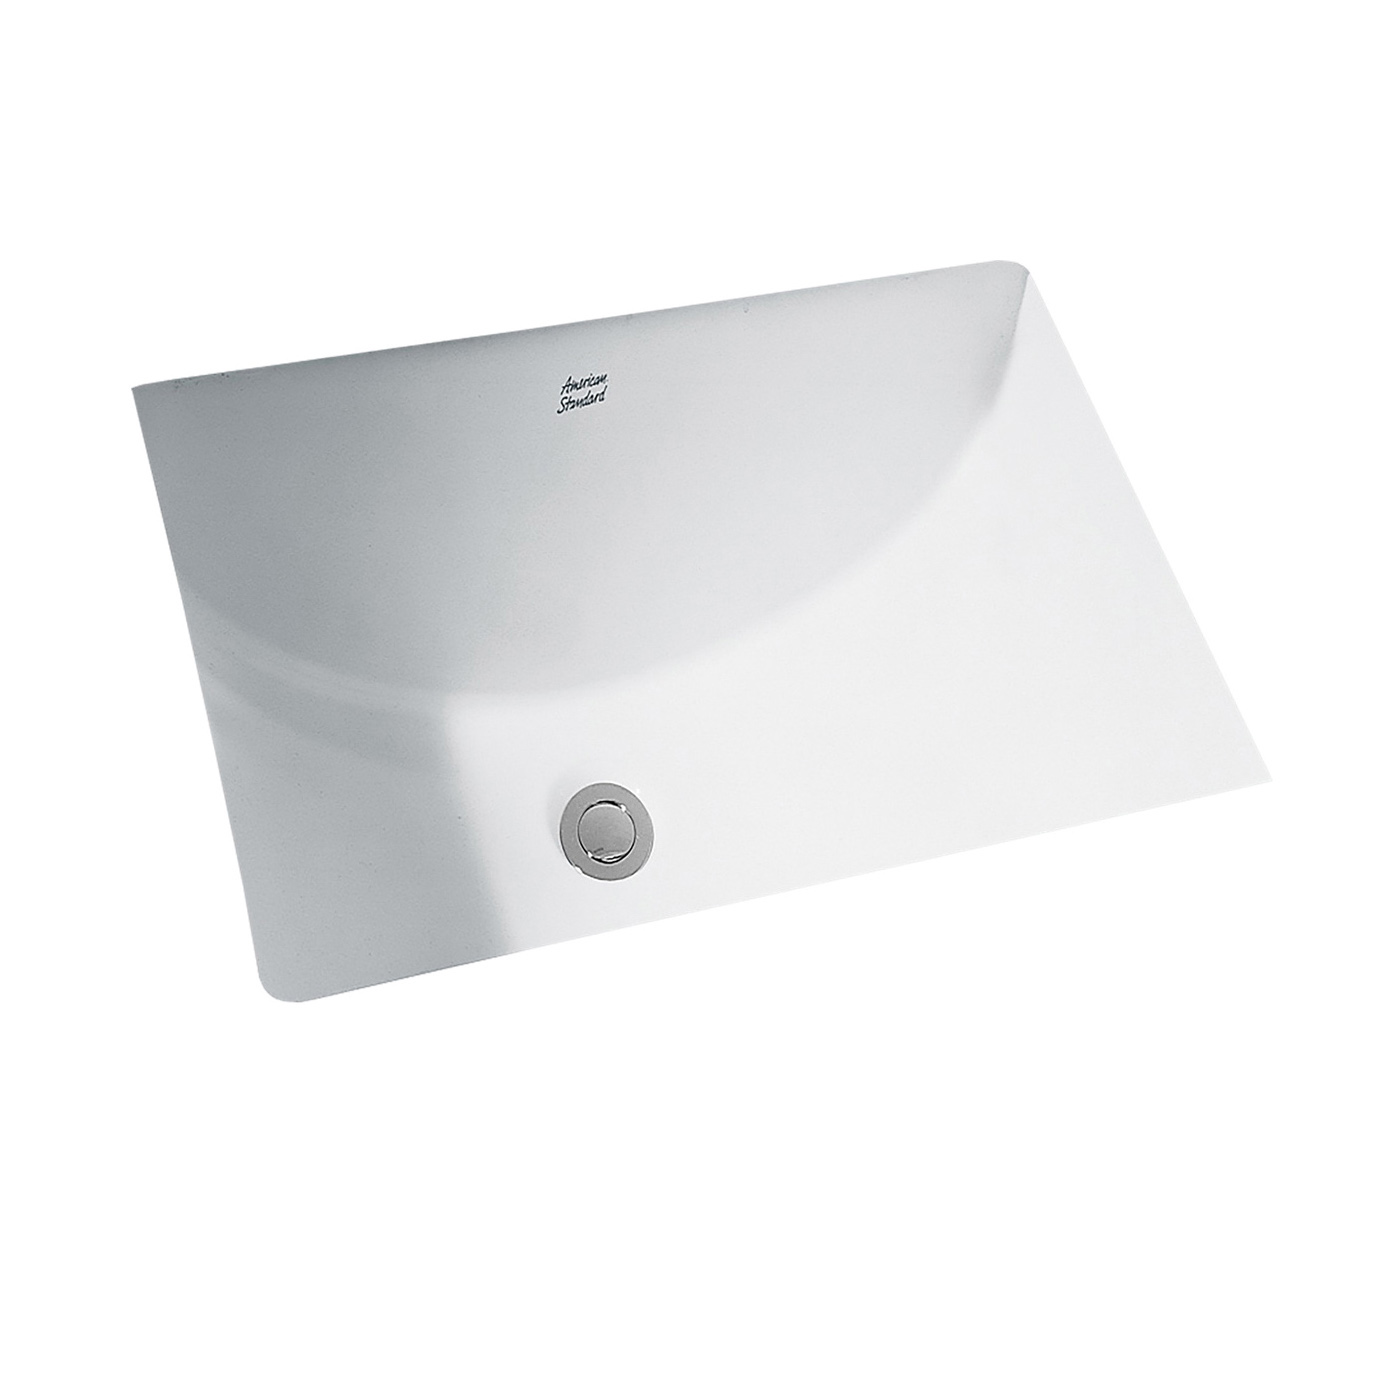 American Standard 0614.000.020 Studio™ Bathroom Sink With Front Overflow, Rectangular, 21-1/4 in W x 15-1/4 in D x 8-1/4 in H, Undercounter Mount, Vitreous China, White, Import